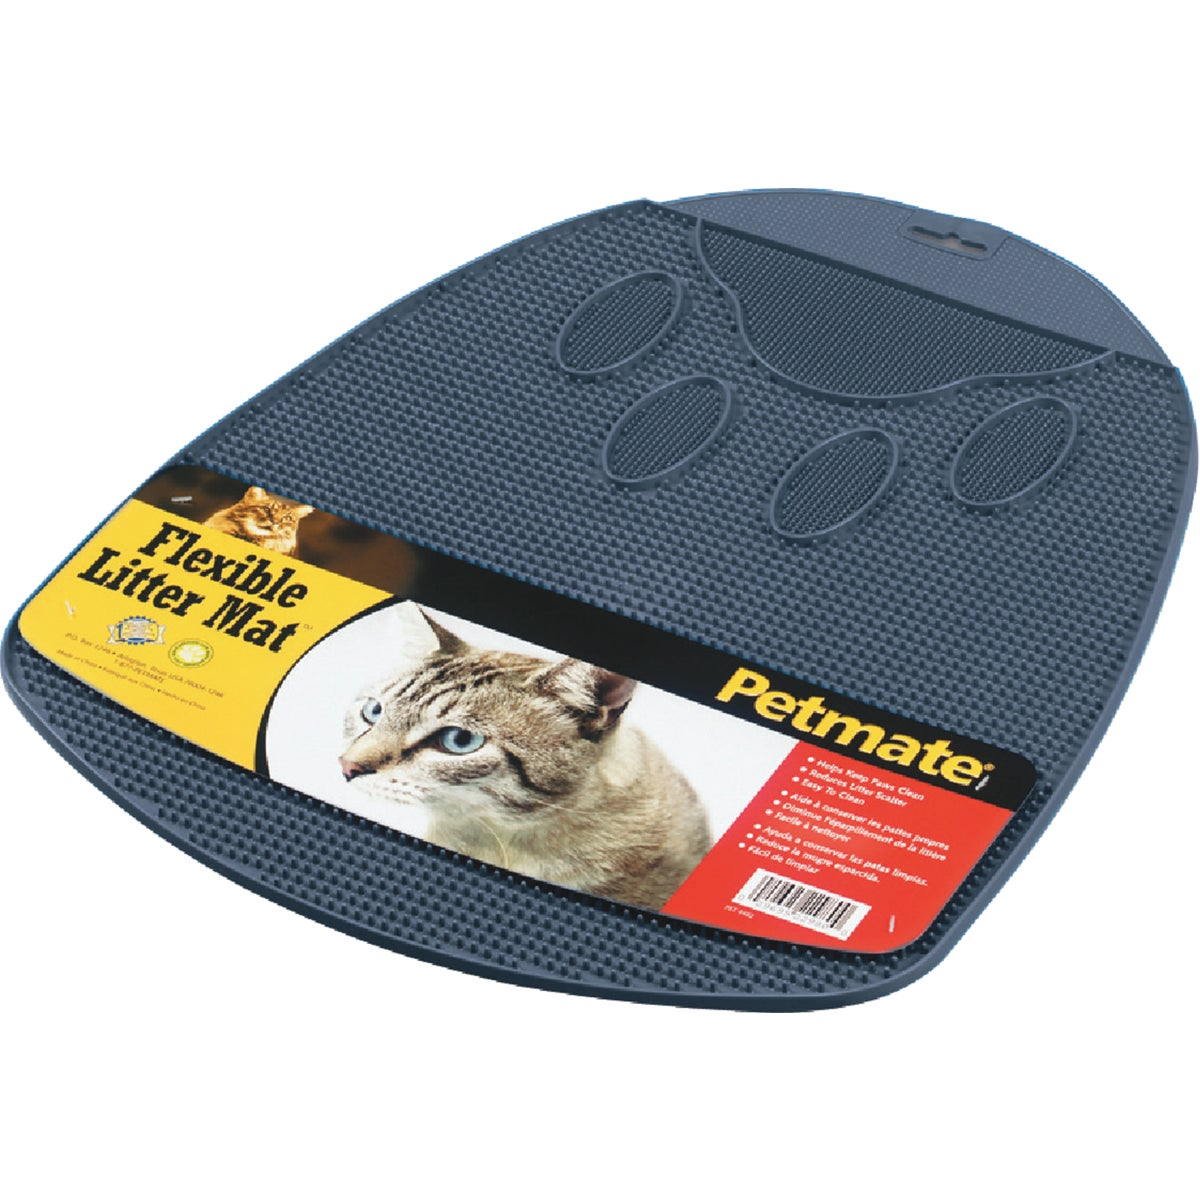 FLEXIBLE LITTER MAT - 22980 by Petmate Doskocil